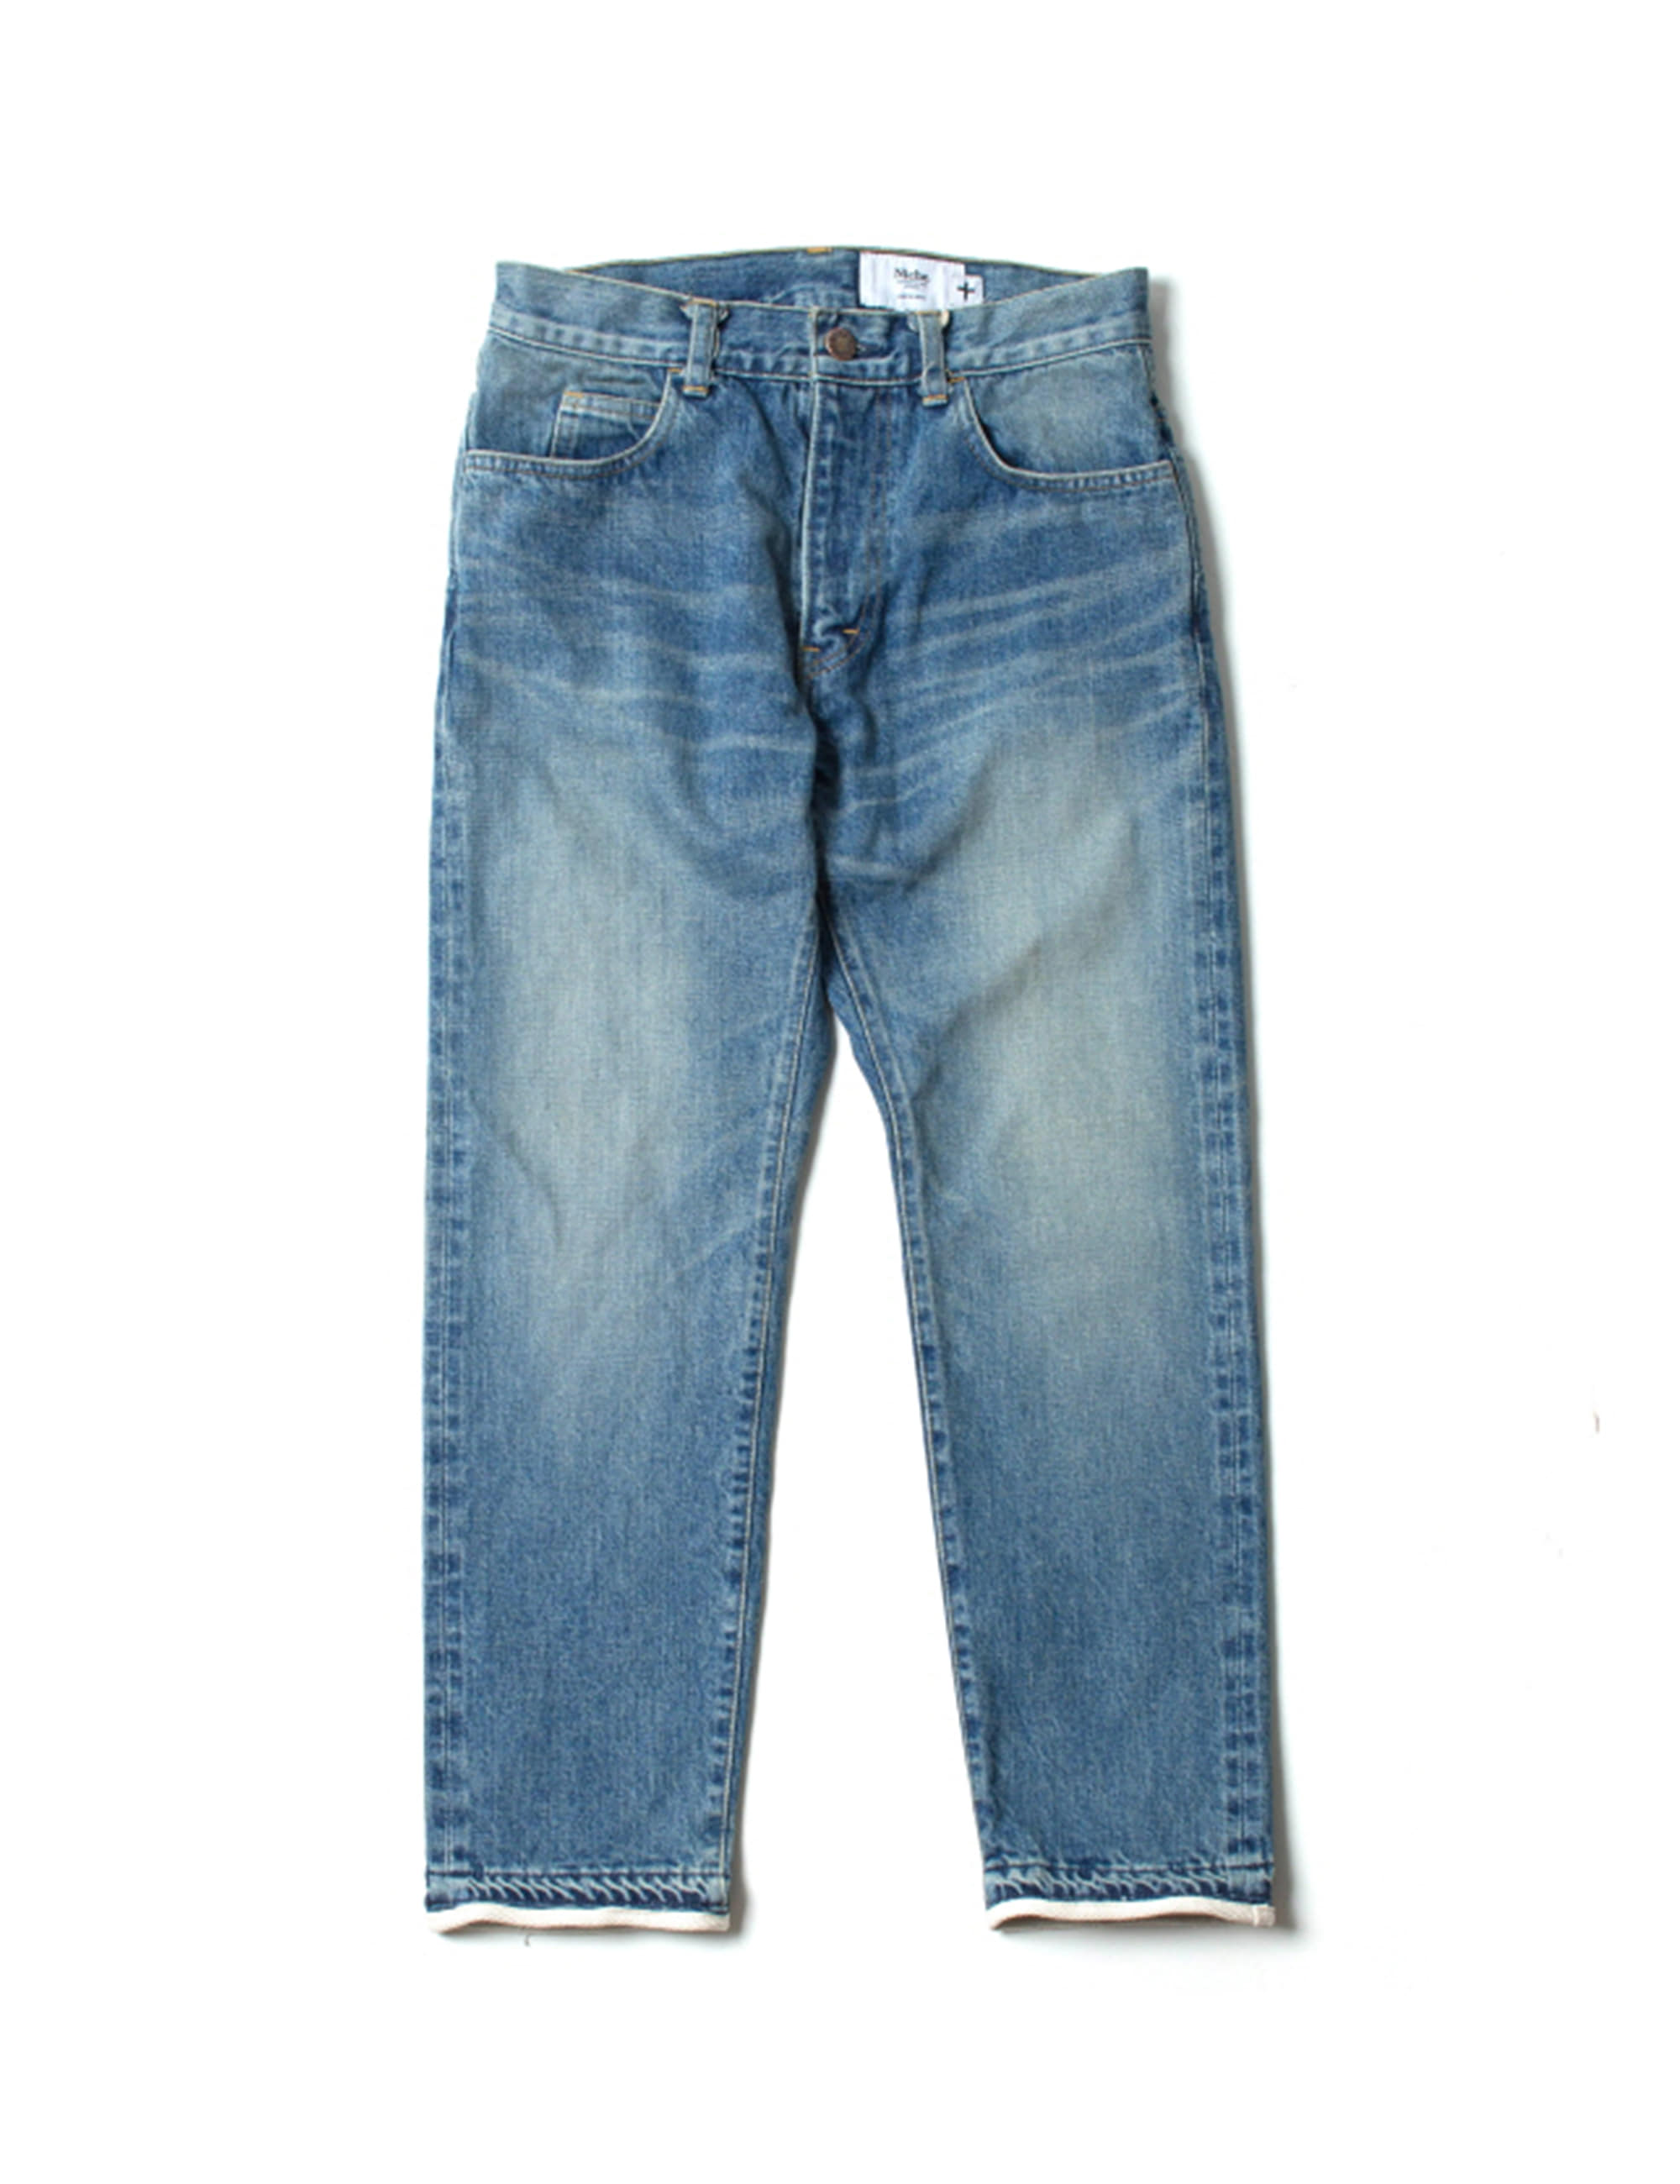 GAUCHO JEANS